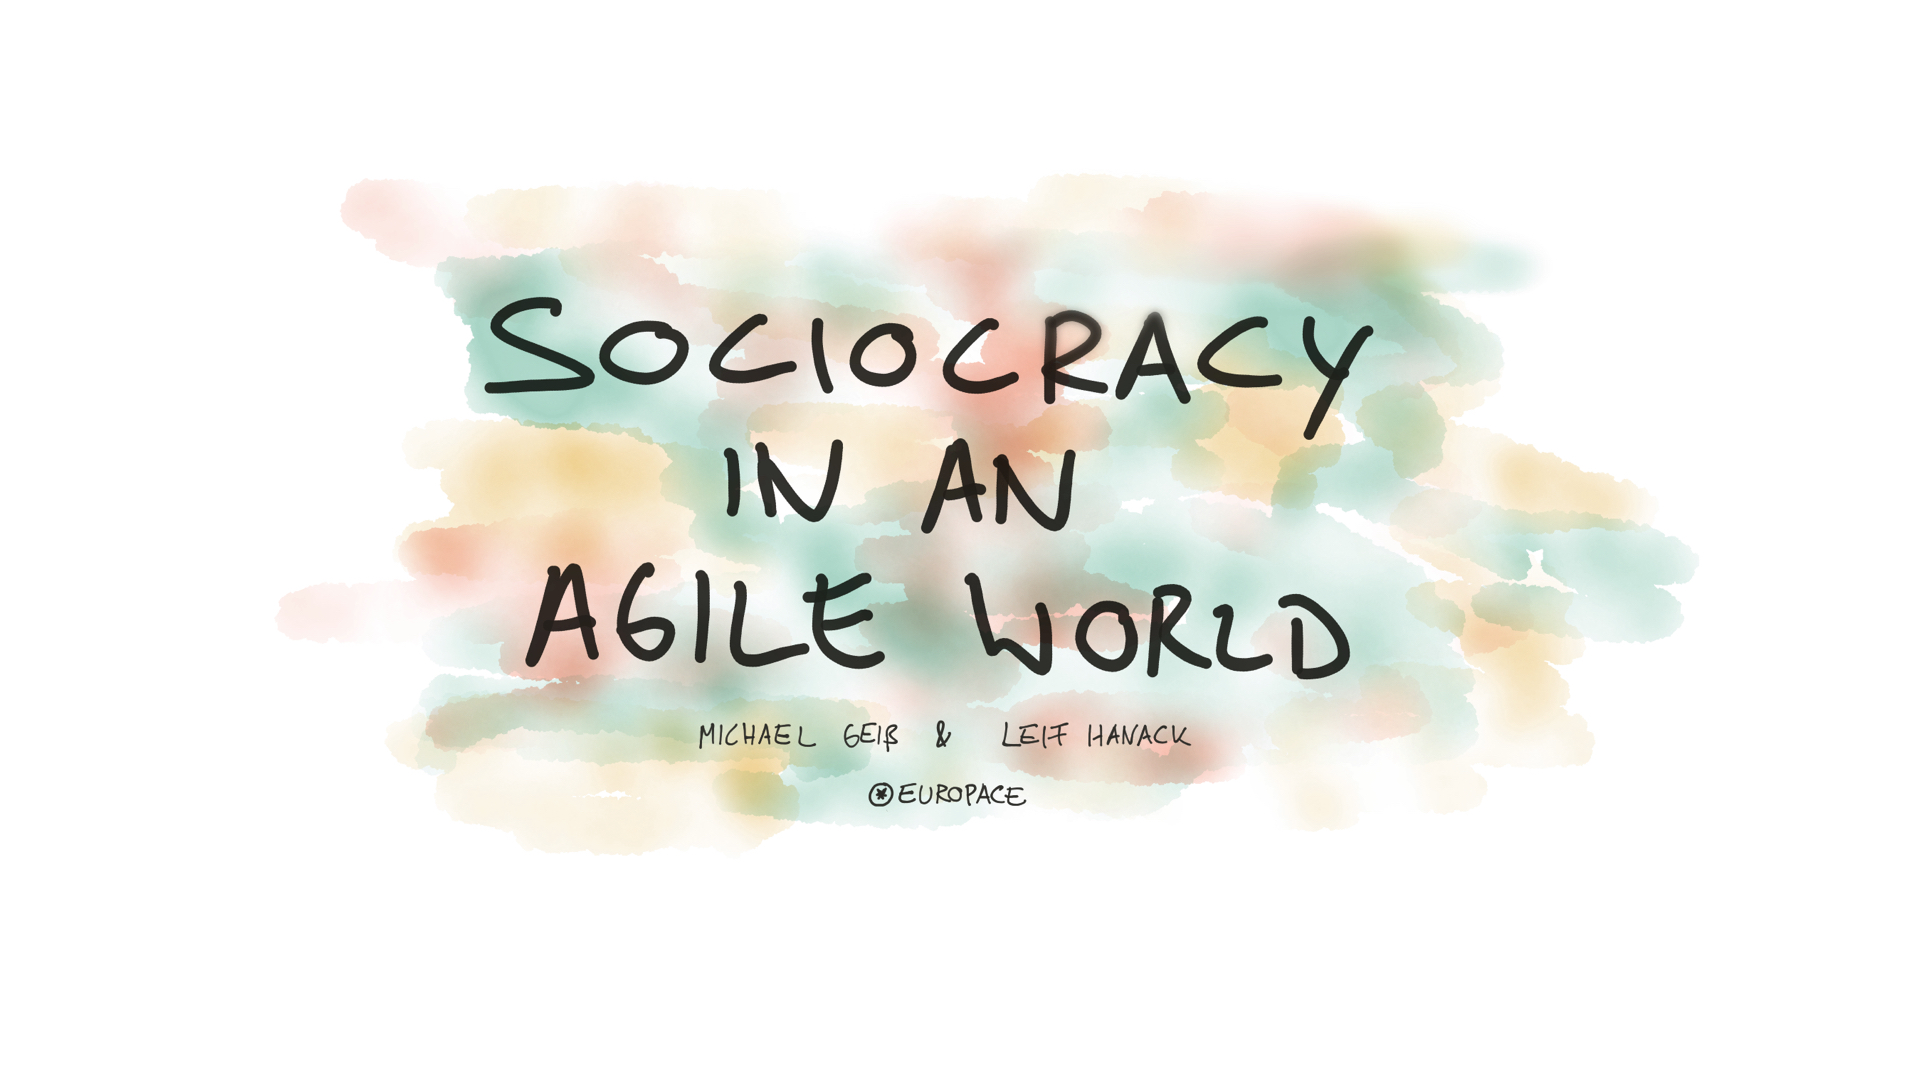 International Sociocracy Online Conference - all talks are now online!